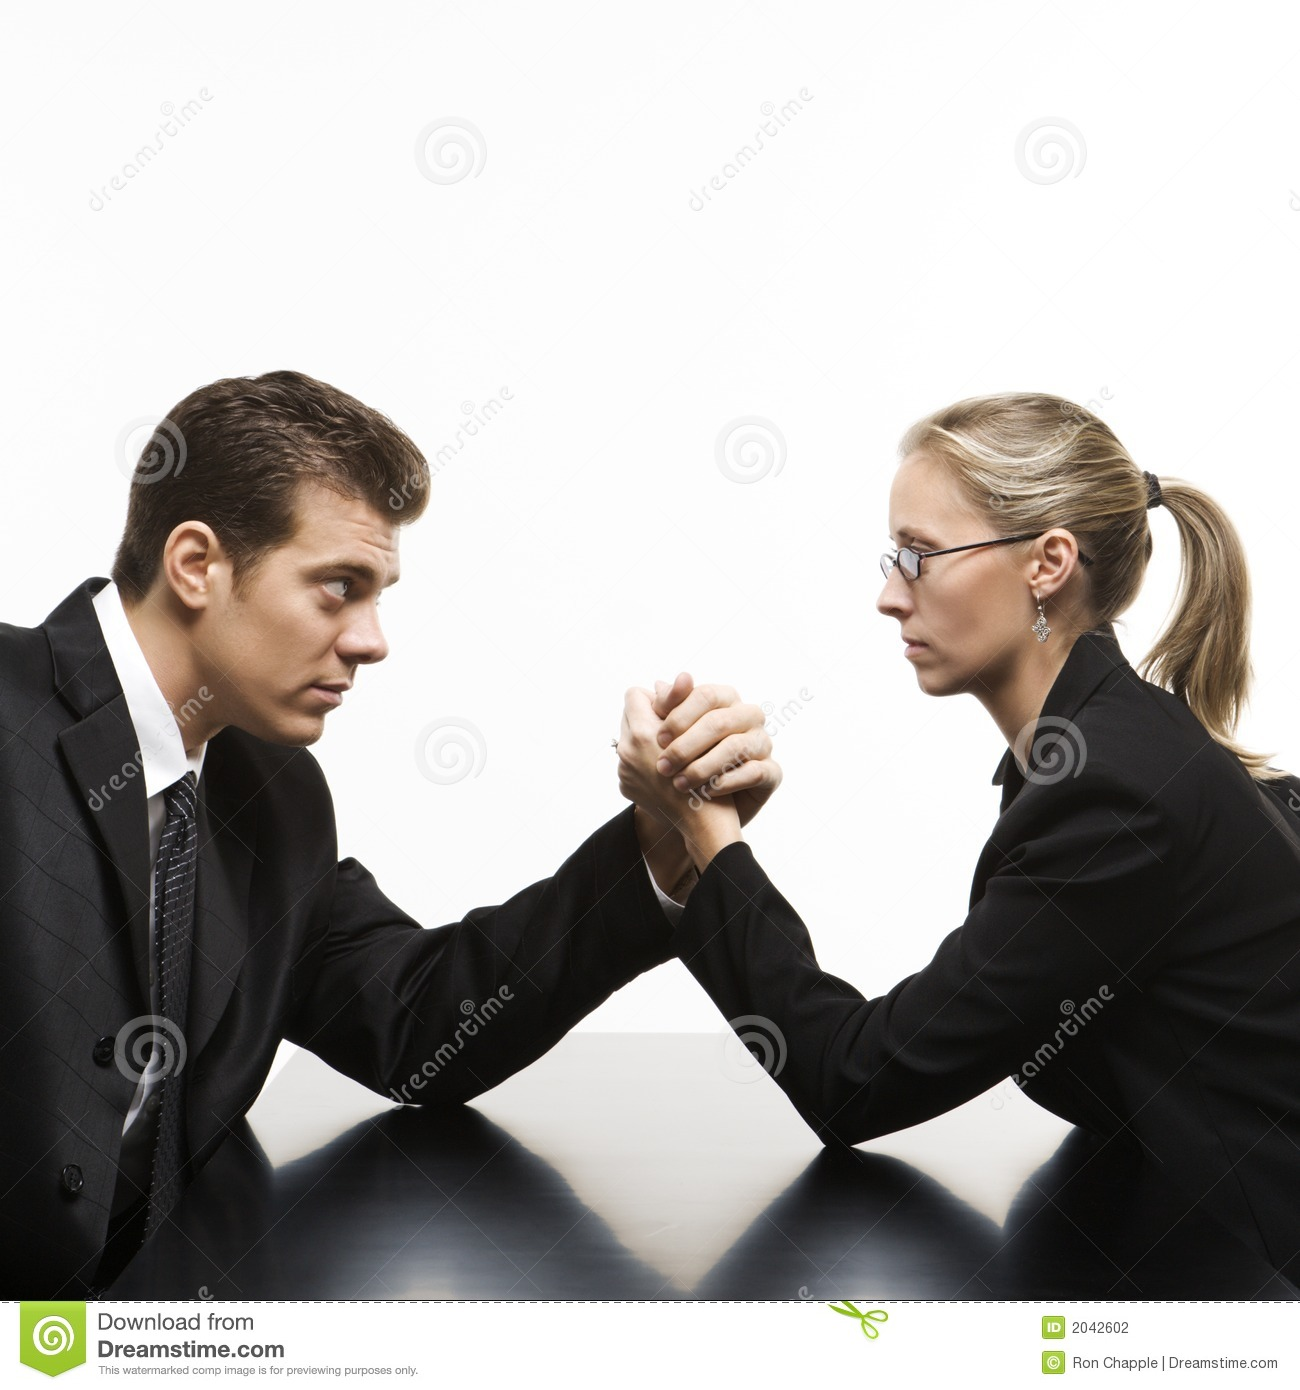 Man And Woman Arm Wrestling On Table. Stock Photography - Image ...